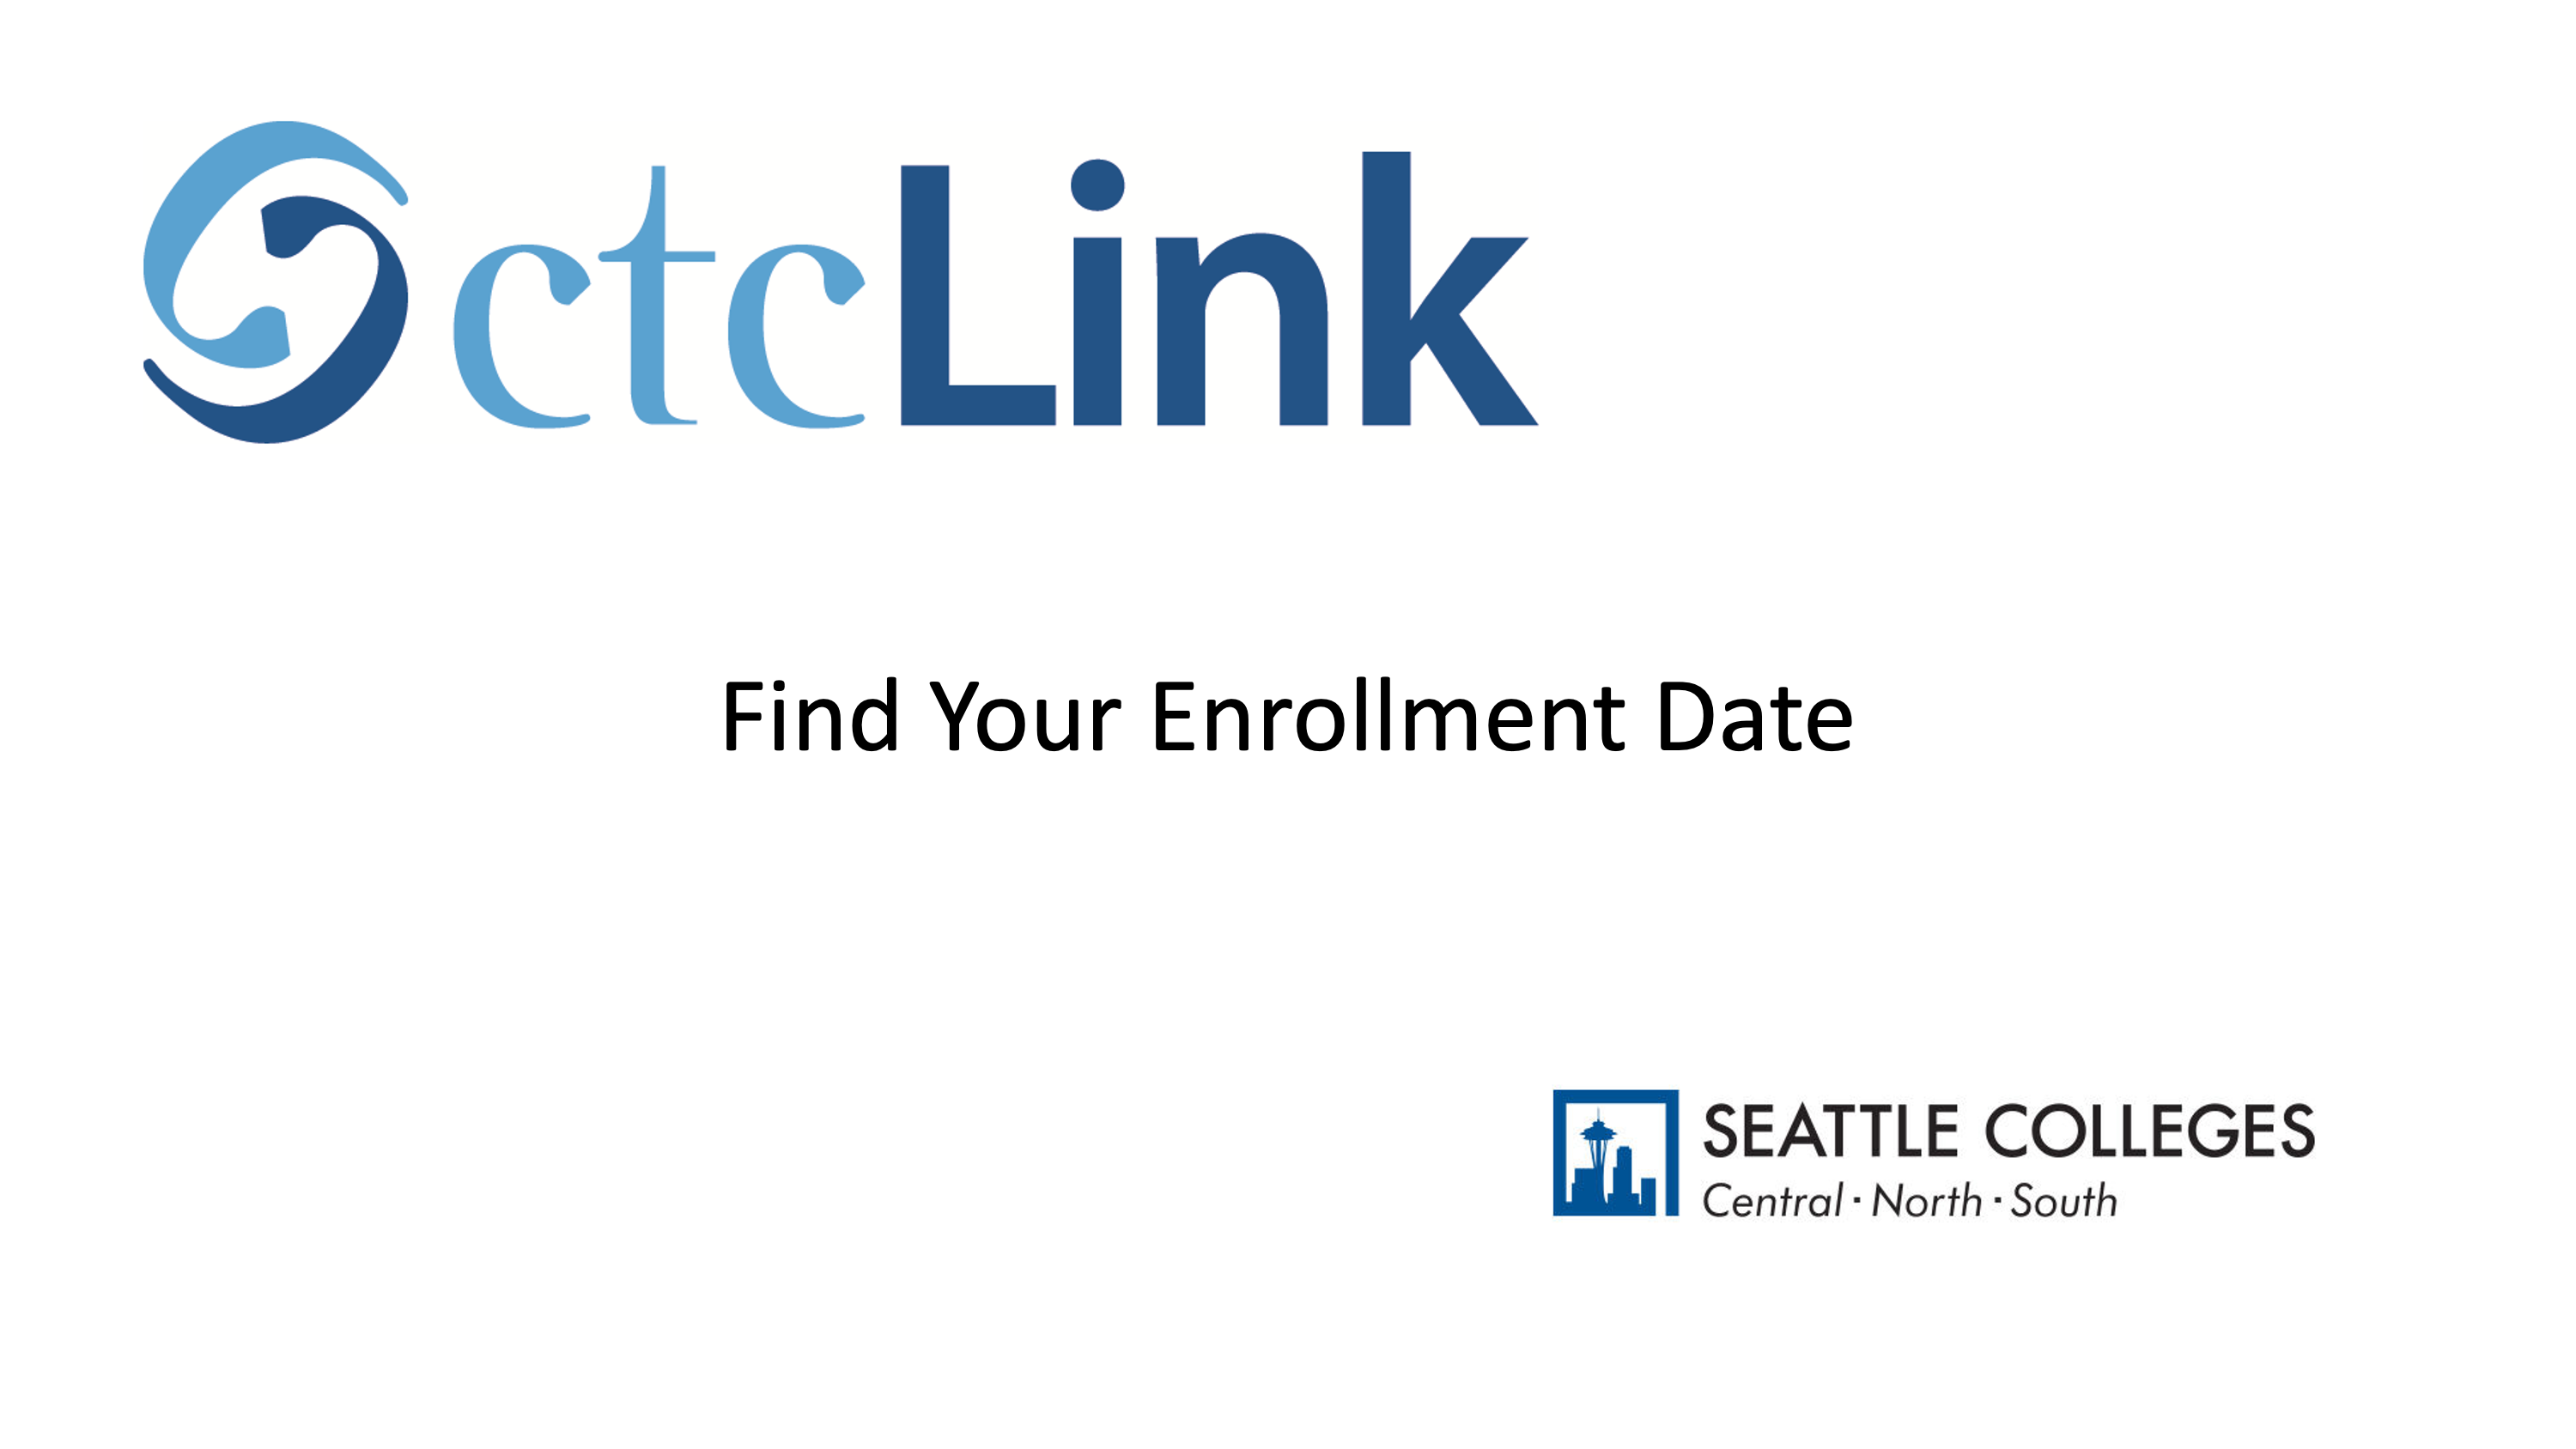 Find Your Enrollment Date